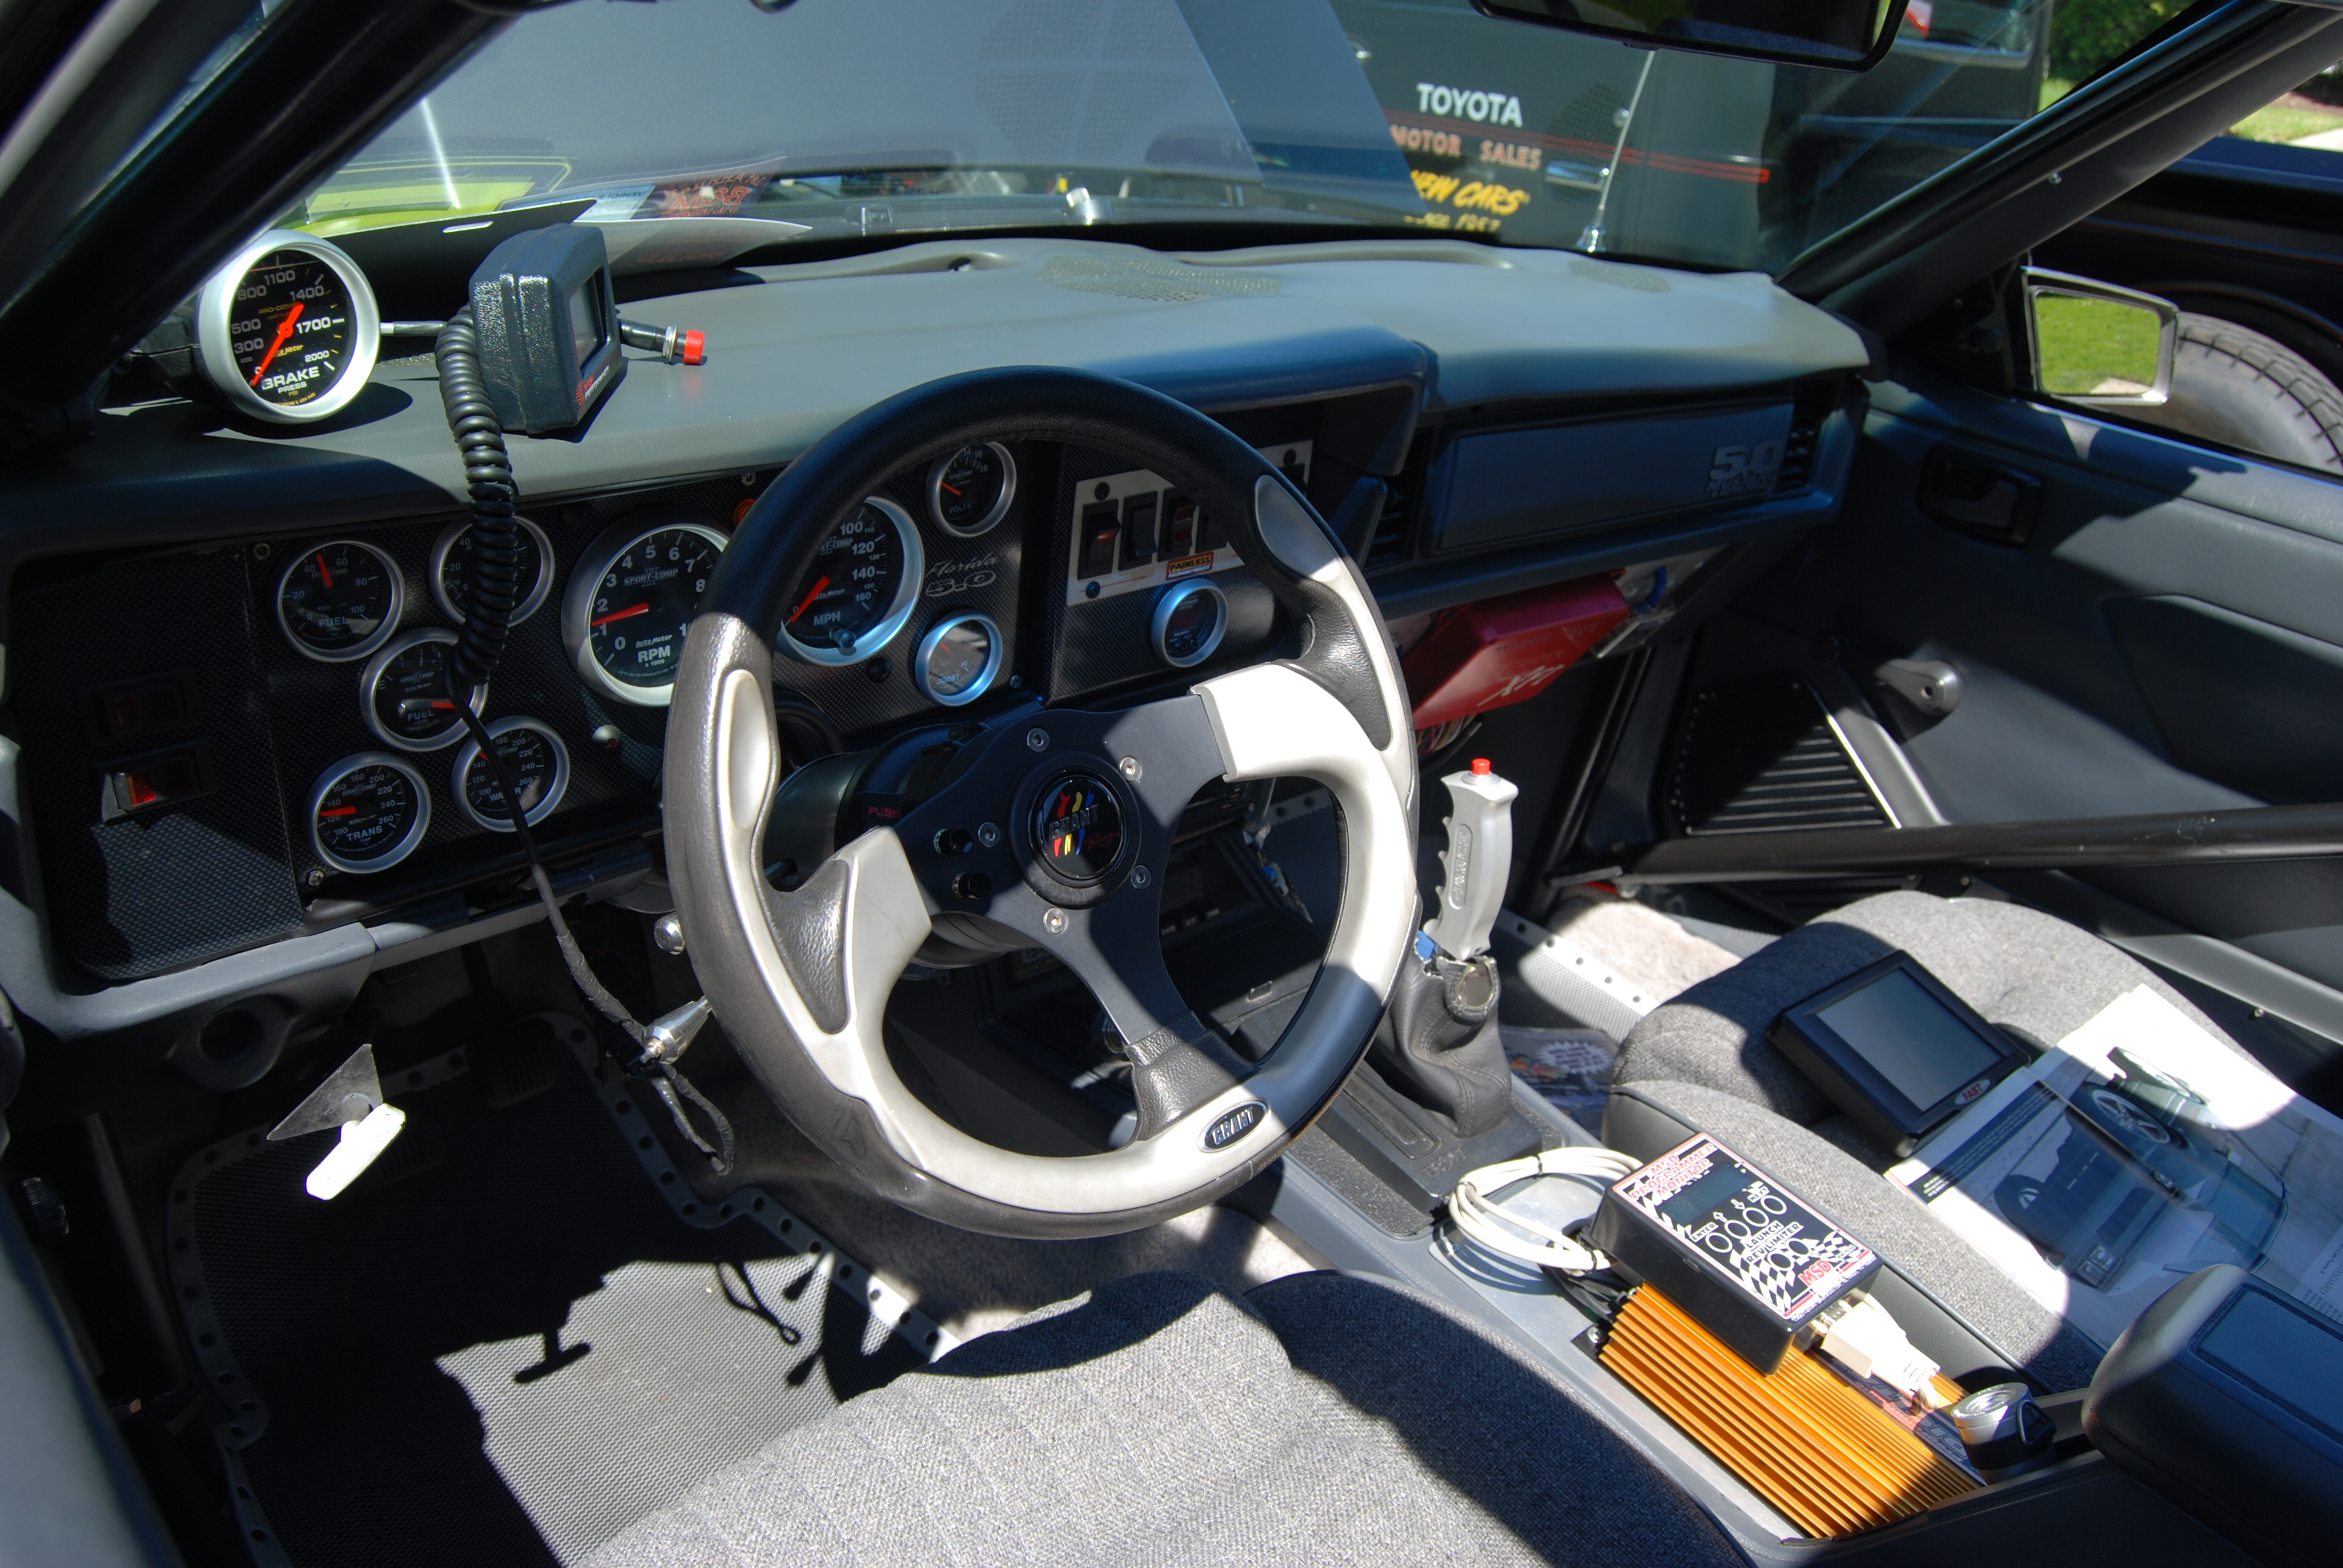 Foxbody Mustang Interior 0 Google Search Mustangs From